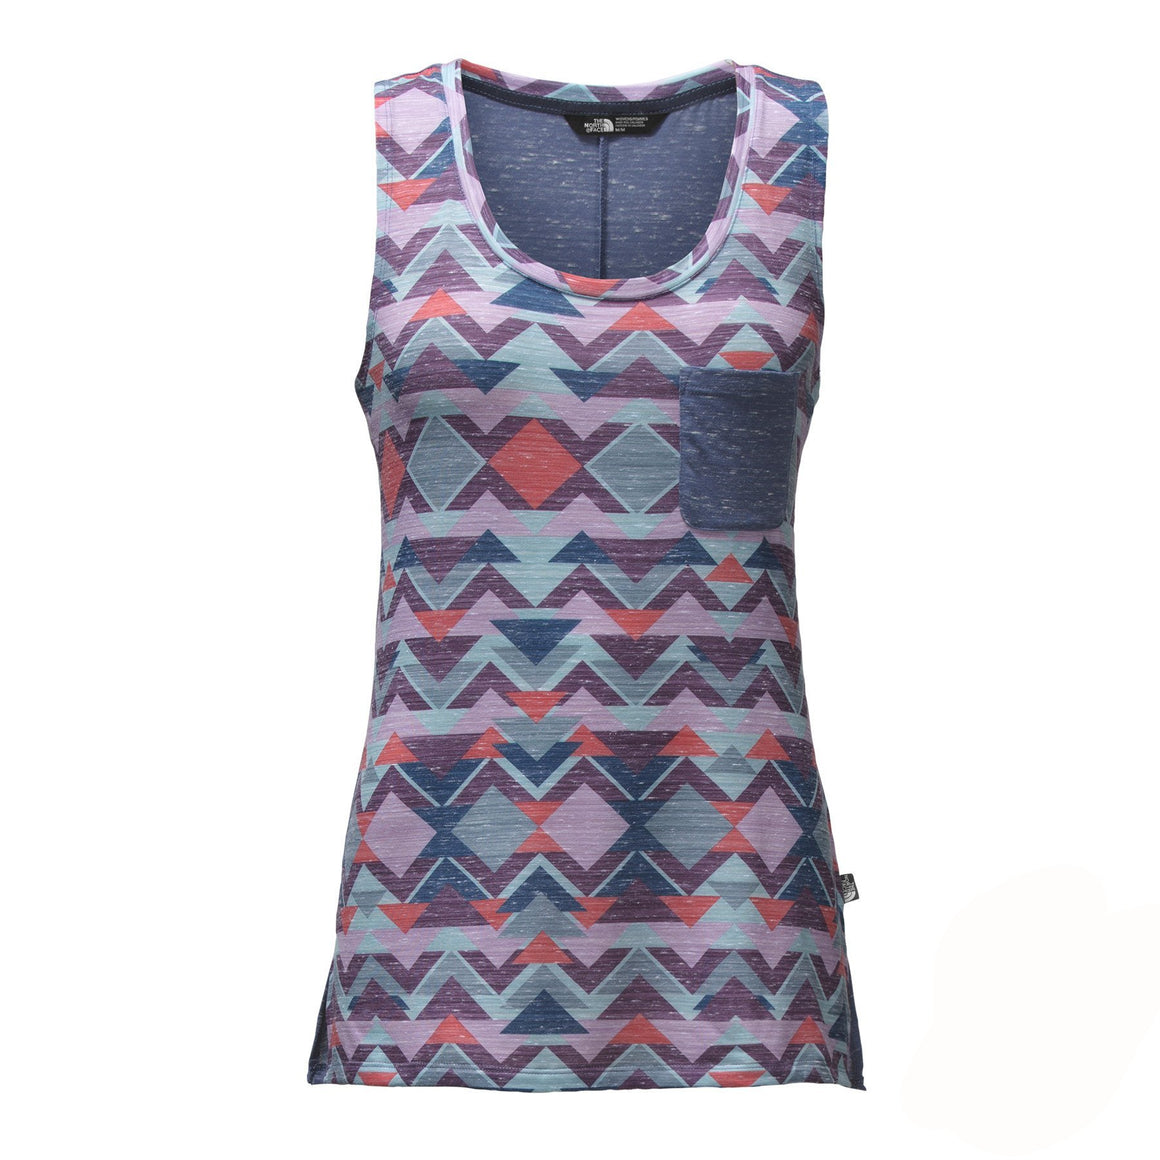 Women's The North Face | EZ Tank | Honeysuckle Pink Triangle Tribal Print